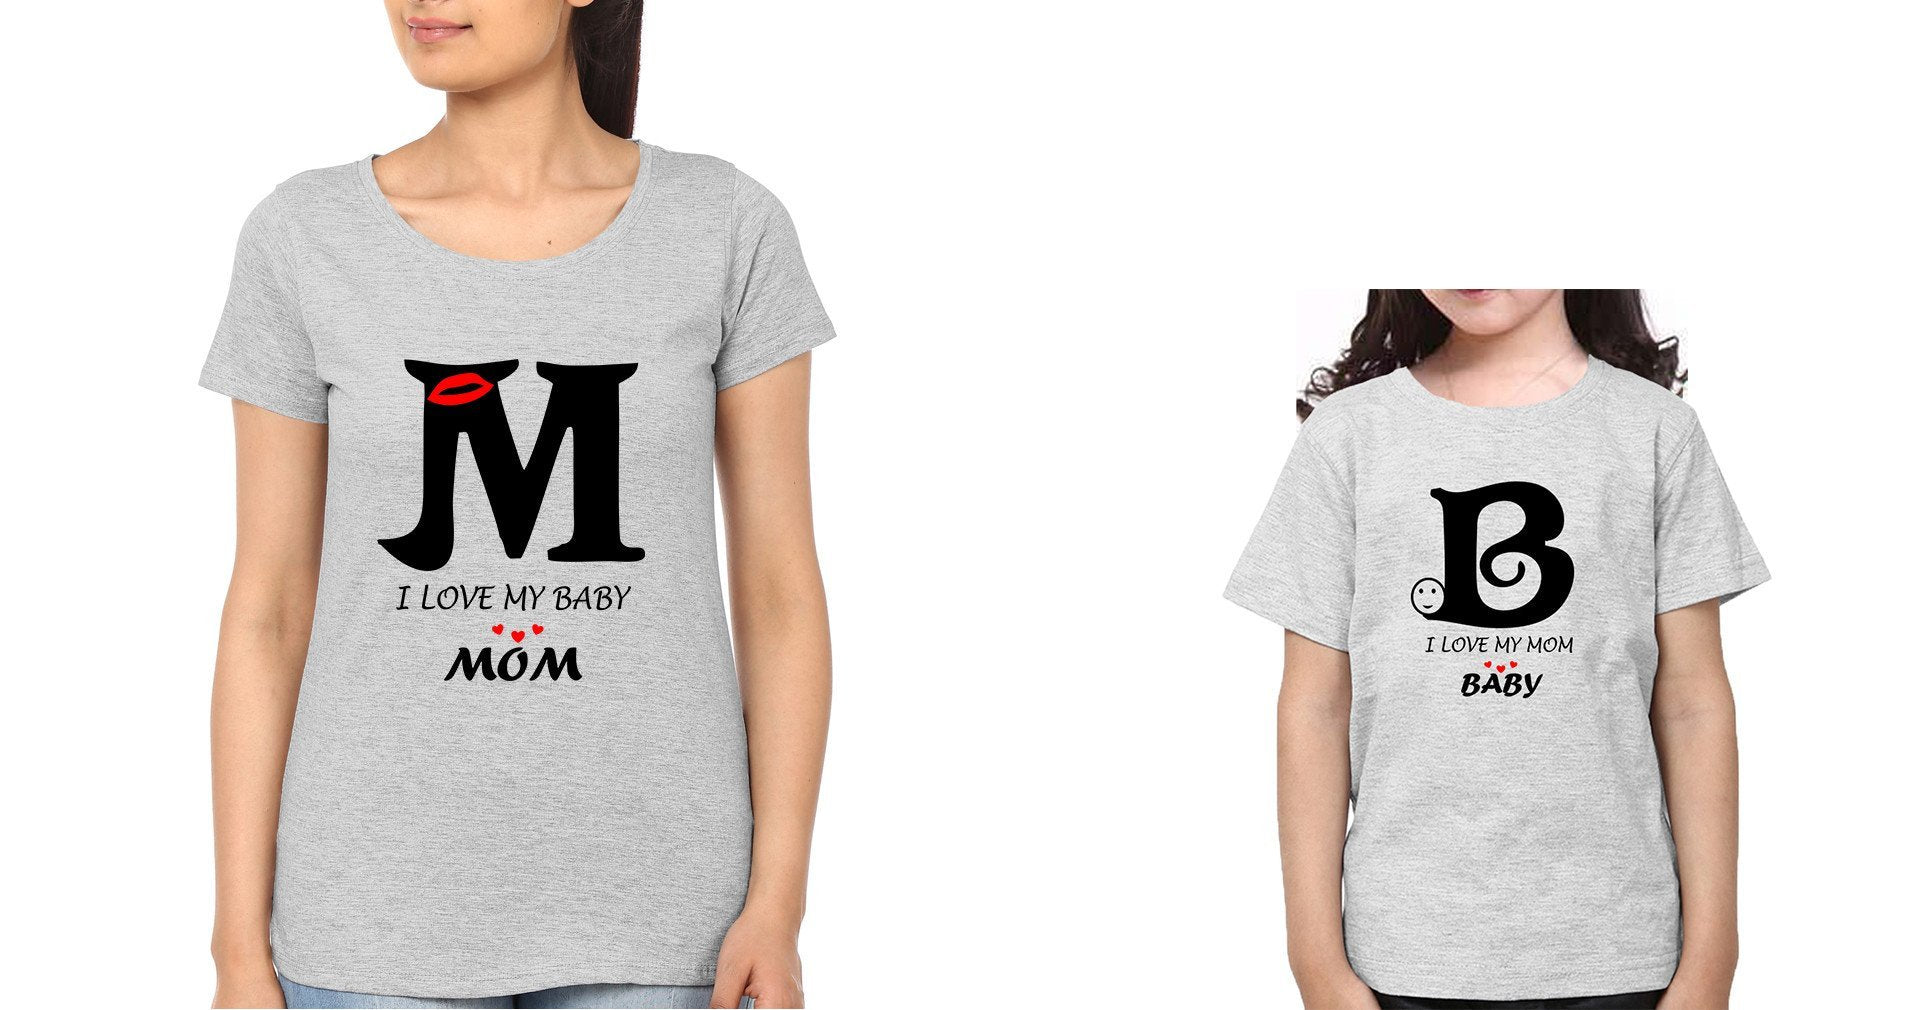 ektarfa.com Mother Daughter T-Shirts I Love My Mom I Love My Baby Mother Daughter T-Shirts